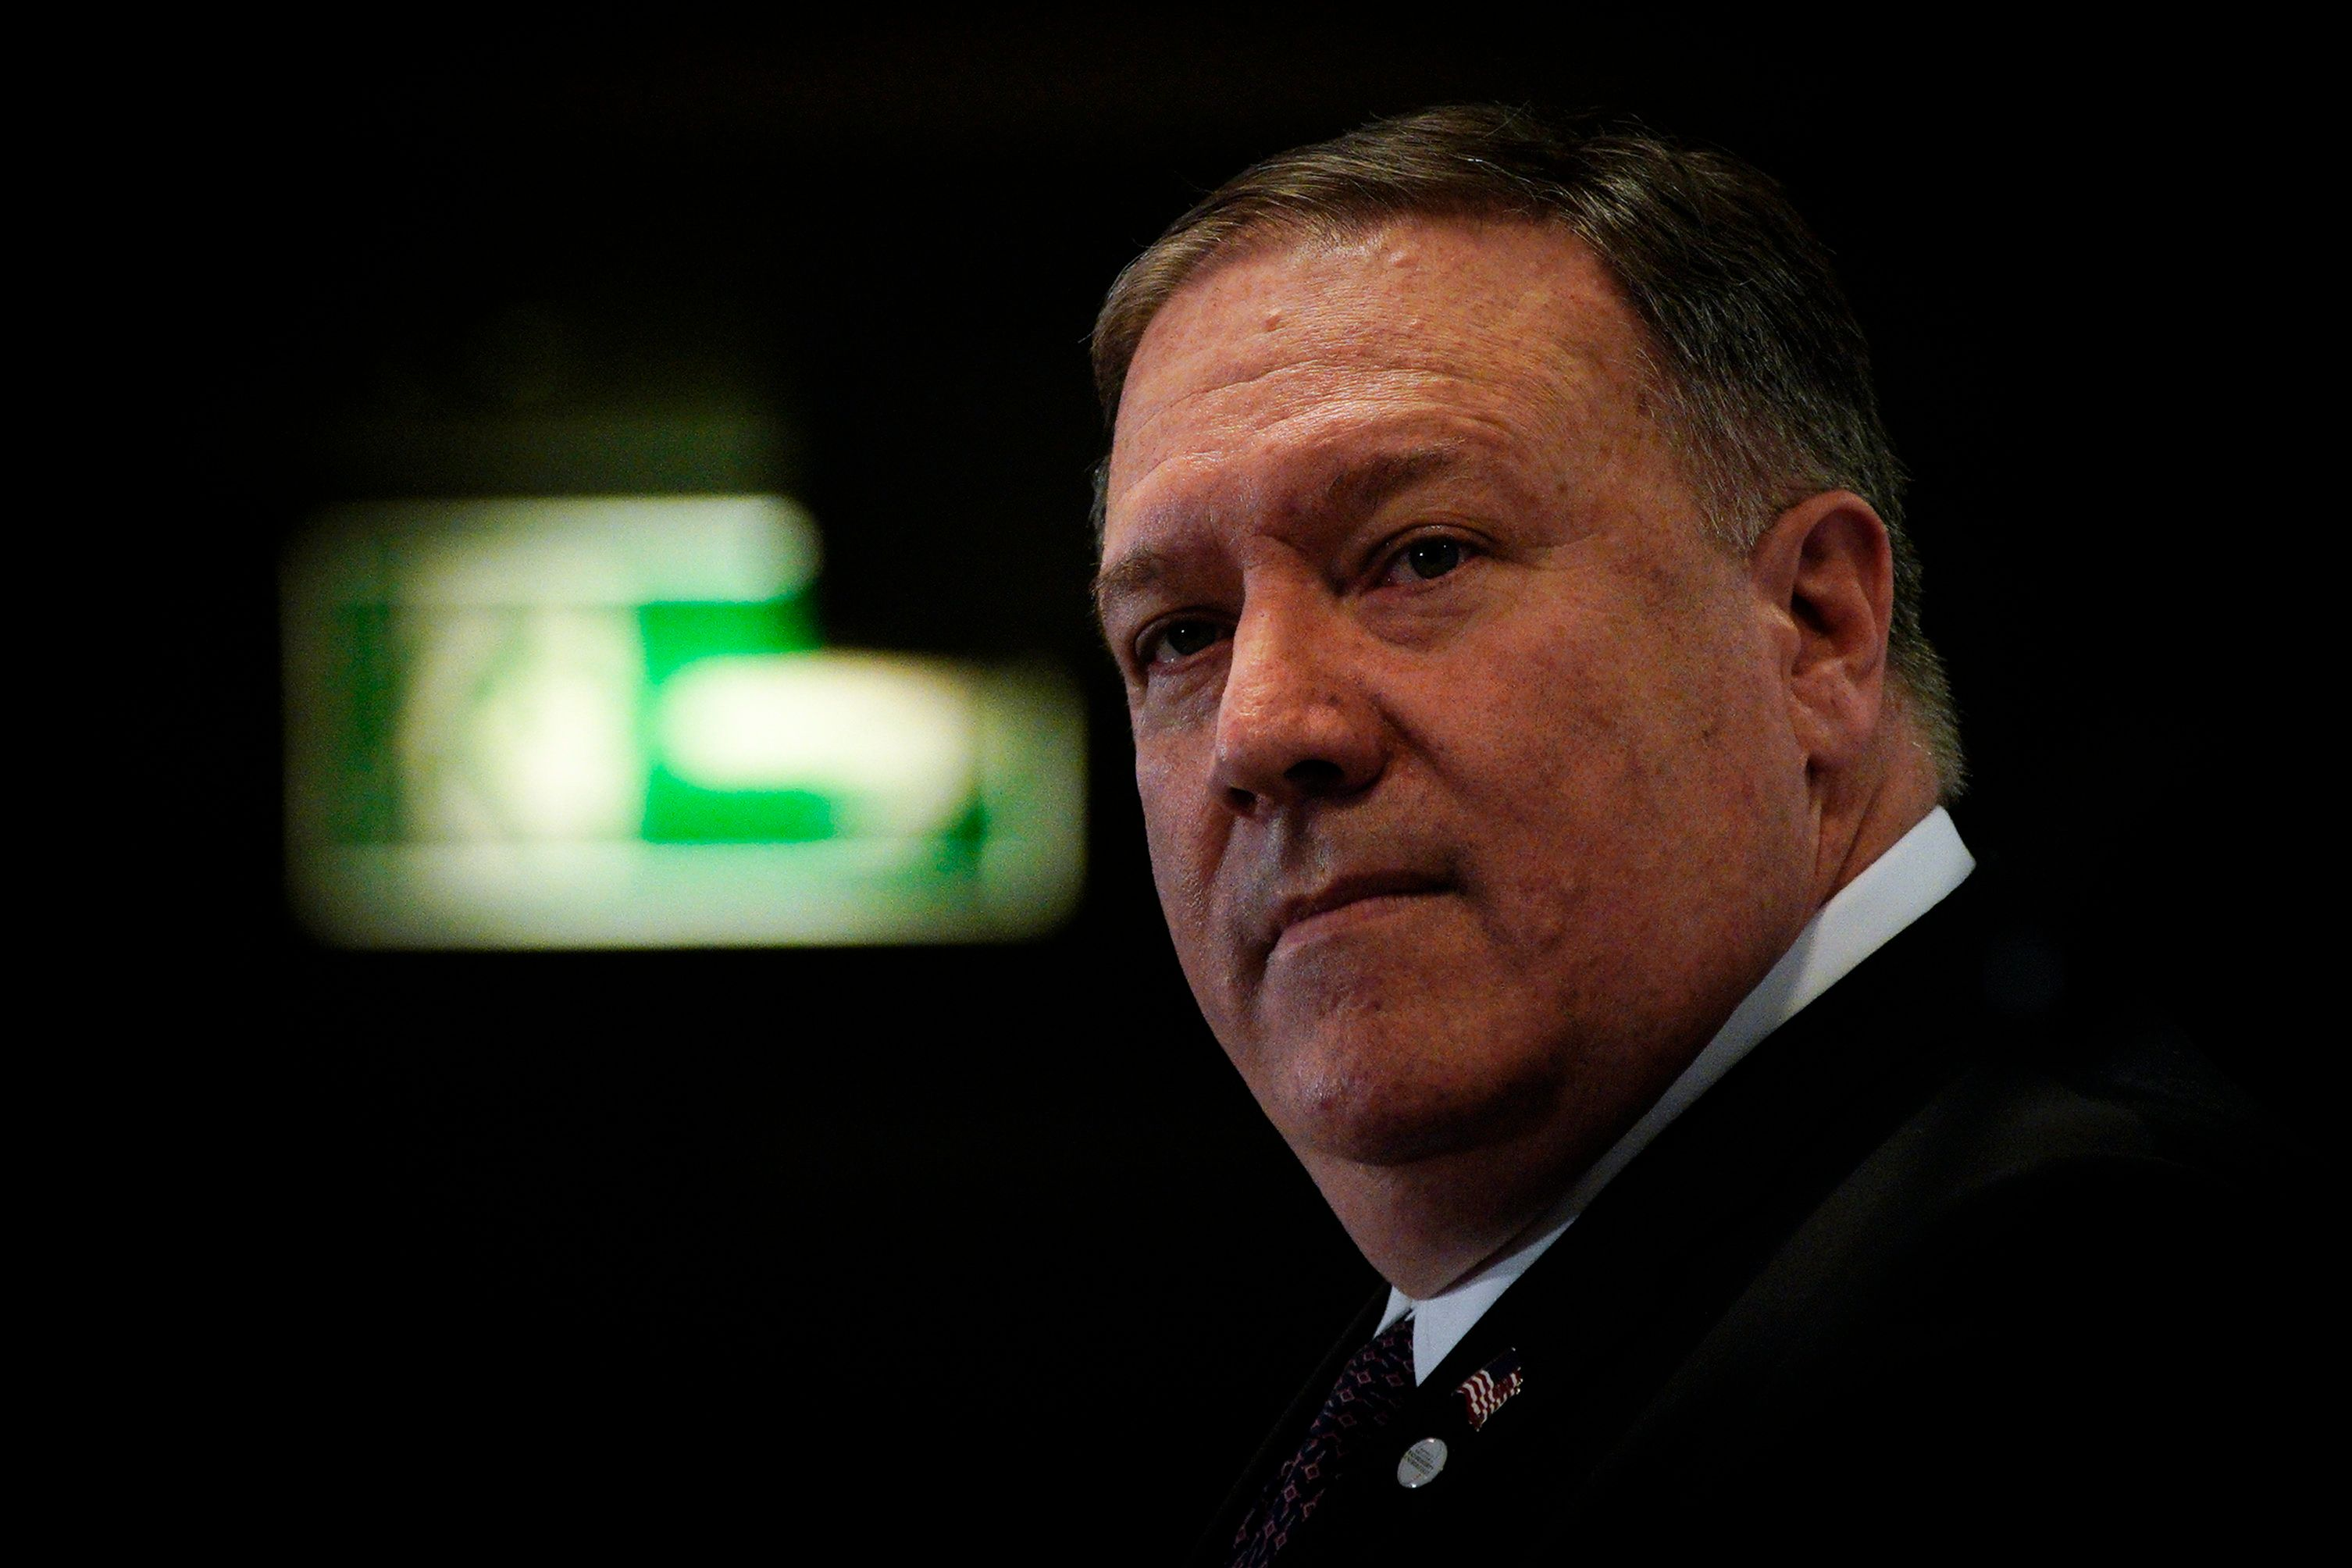 US Secretary of State Mike Pompeo is seen at the final press conference of the Middle Easat summit in Warsaw, Poland on February 14, 2019. The summit, in which 65 countries are taking part has been widely criticised as an attempt by the US and it's allies to isolate Iran. The outcome of the summit might determine who will take up Washington's diminishing role in the region as the Trump administration withdraws troops from Syria and after it pulled out of the nuclear non-proliferation agreement with Iran. (Photo by Jaap Arriens/NurPhoto via Getty Images)